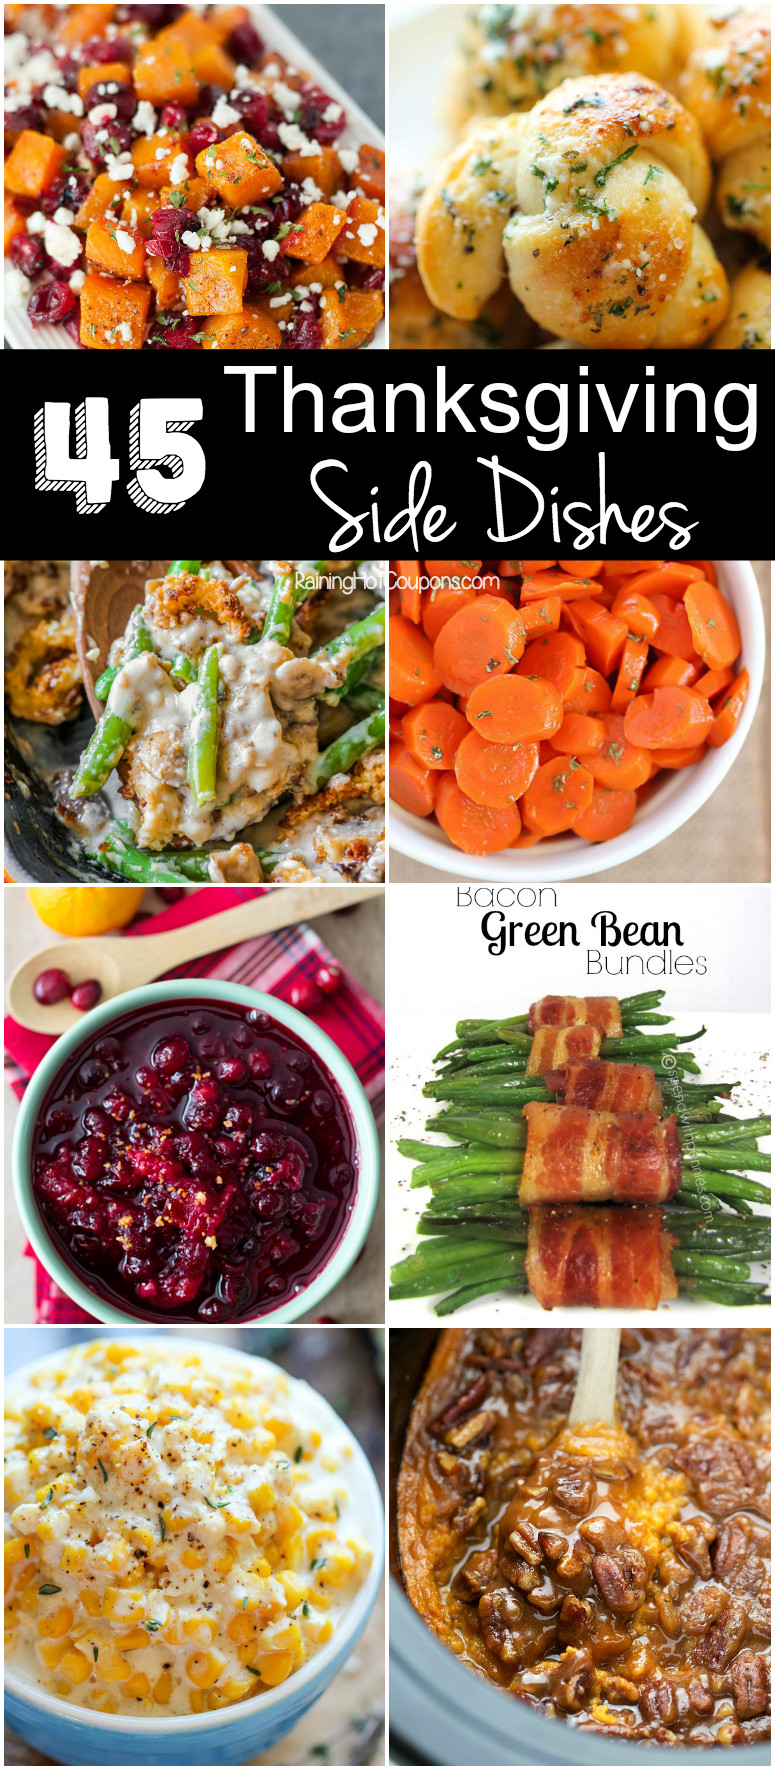 Side Dishes For Thanksgiving  45 Thanksgiving Side Dishes